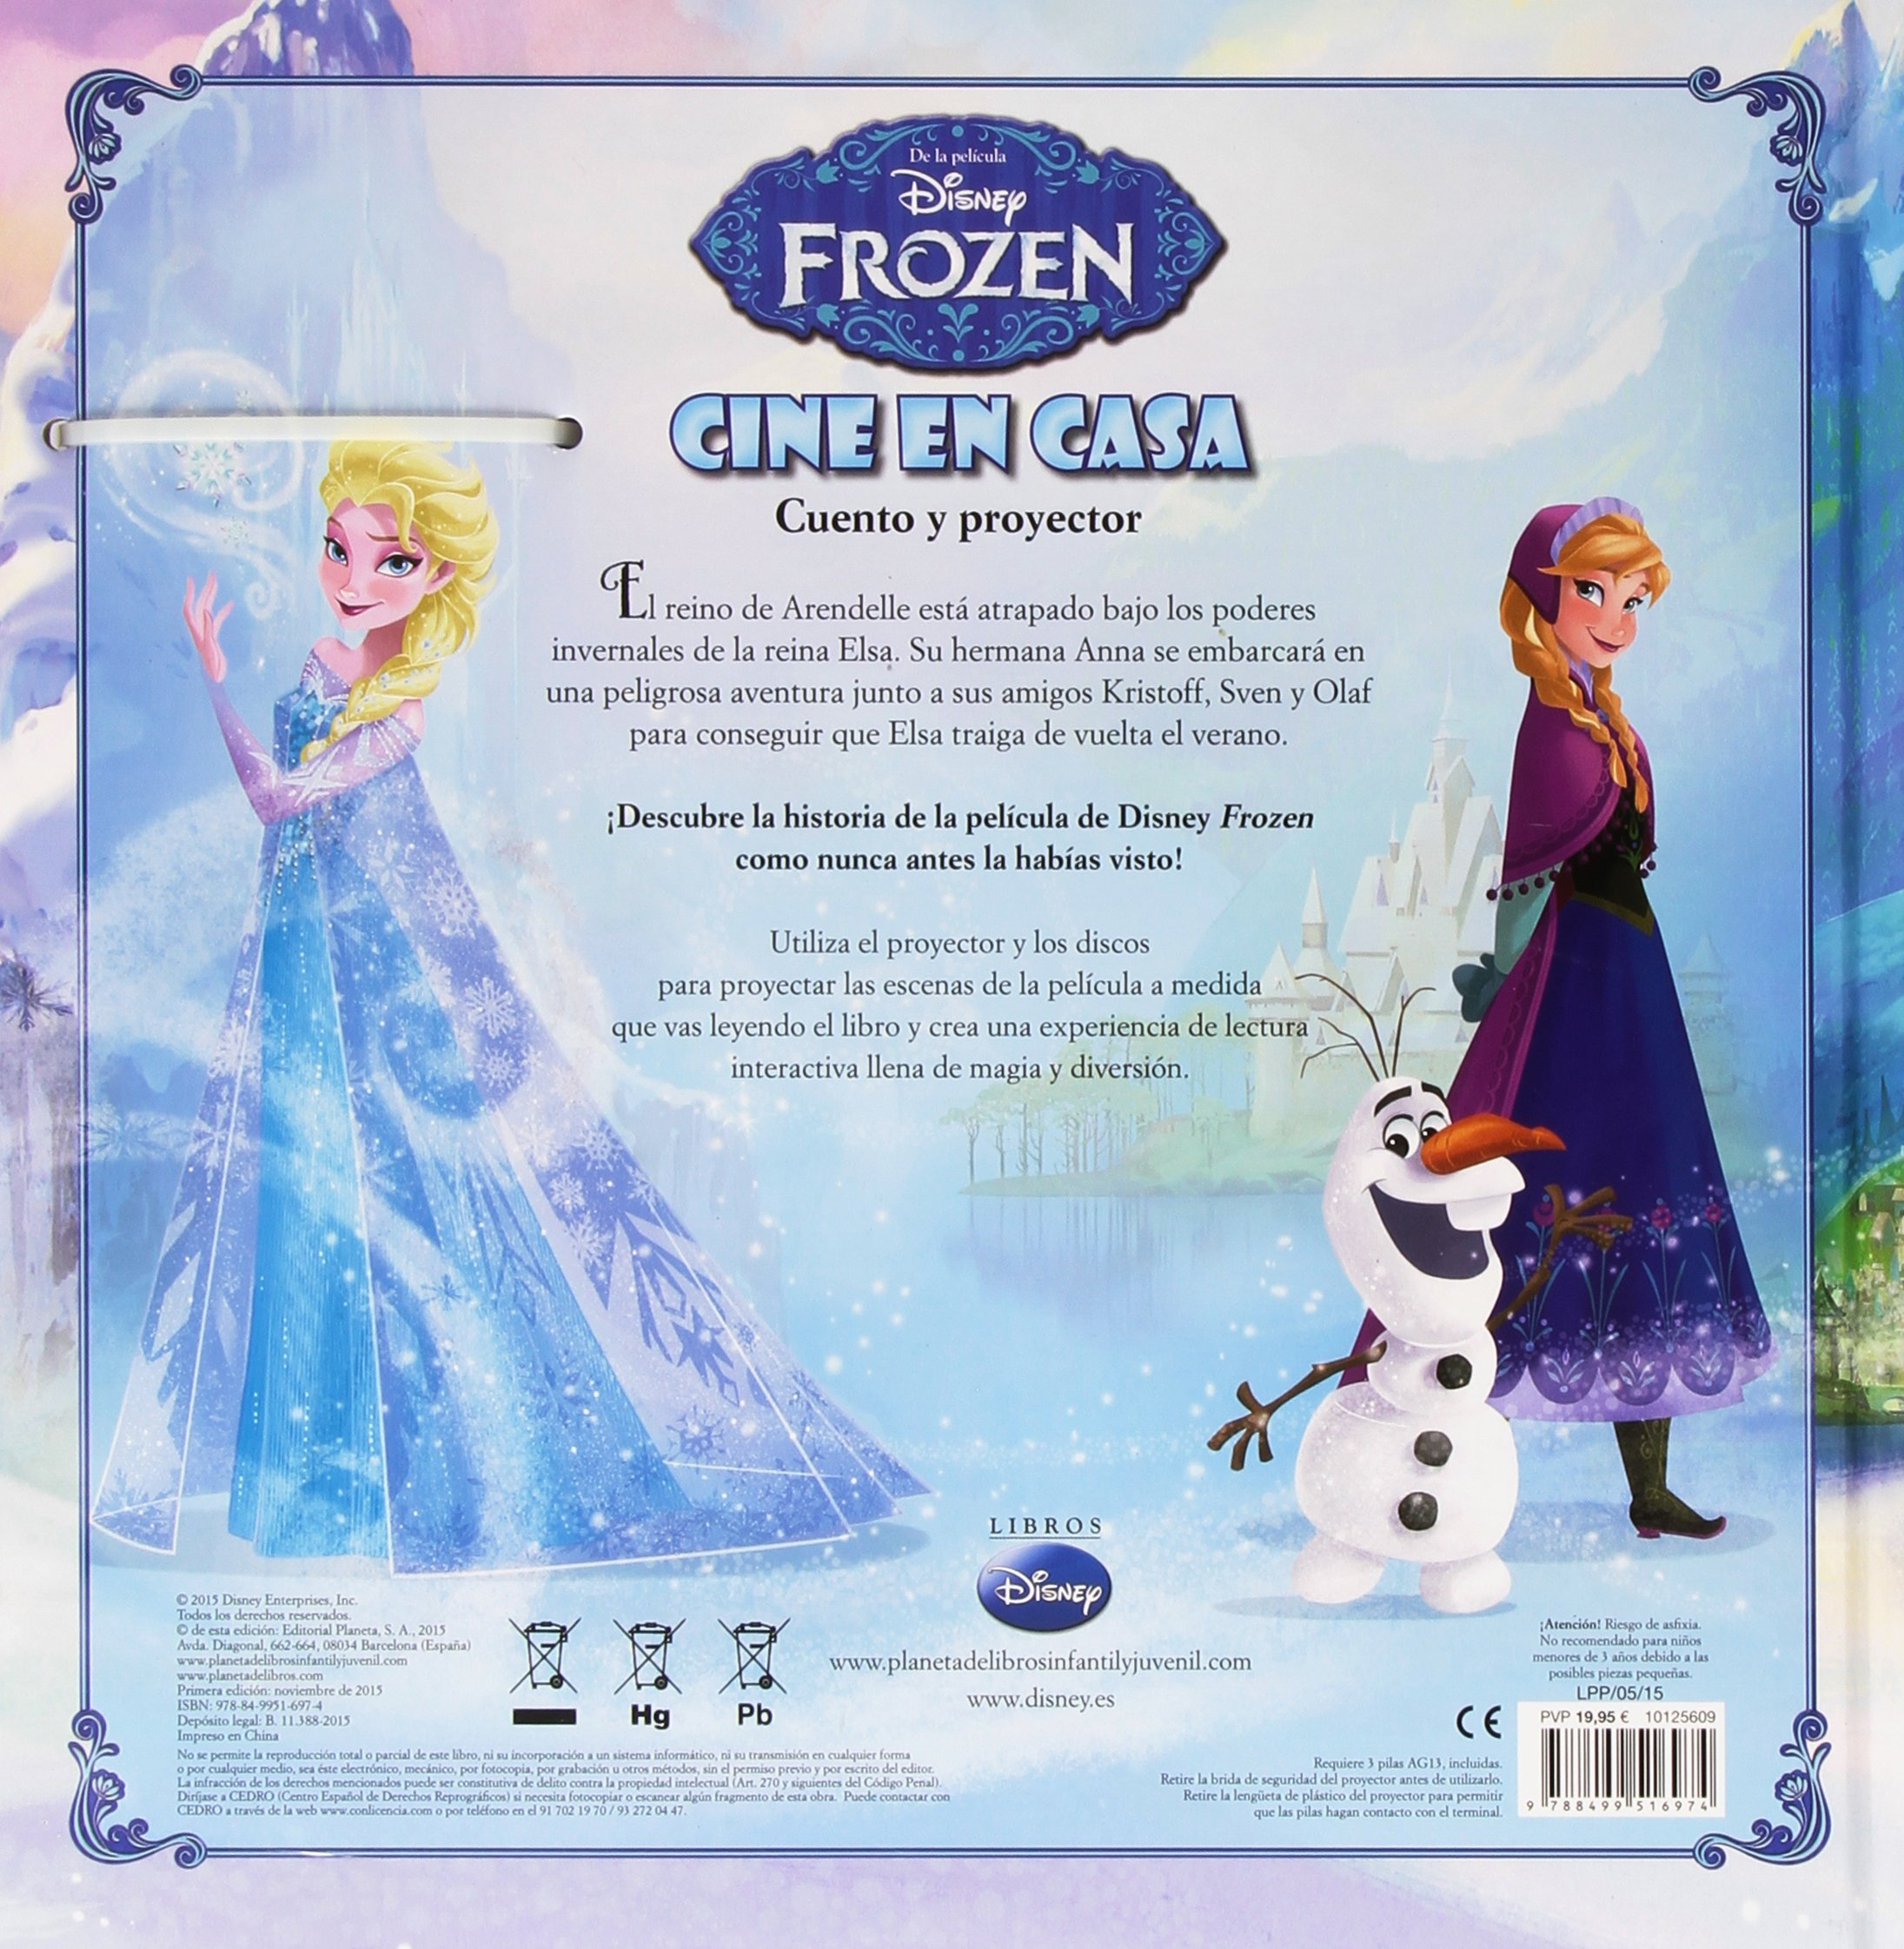 Frozen. Cine en casa: Disney: 9788499516974: Amazon.com: Books